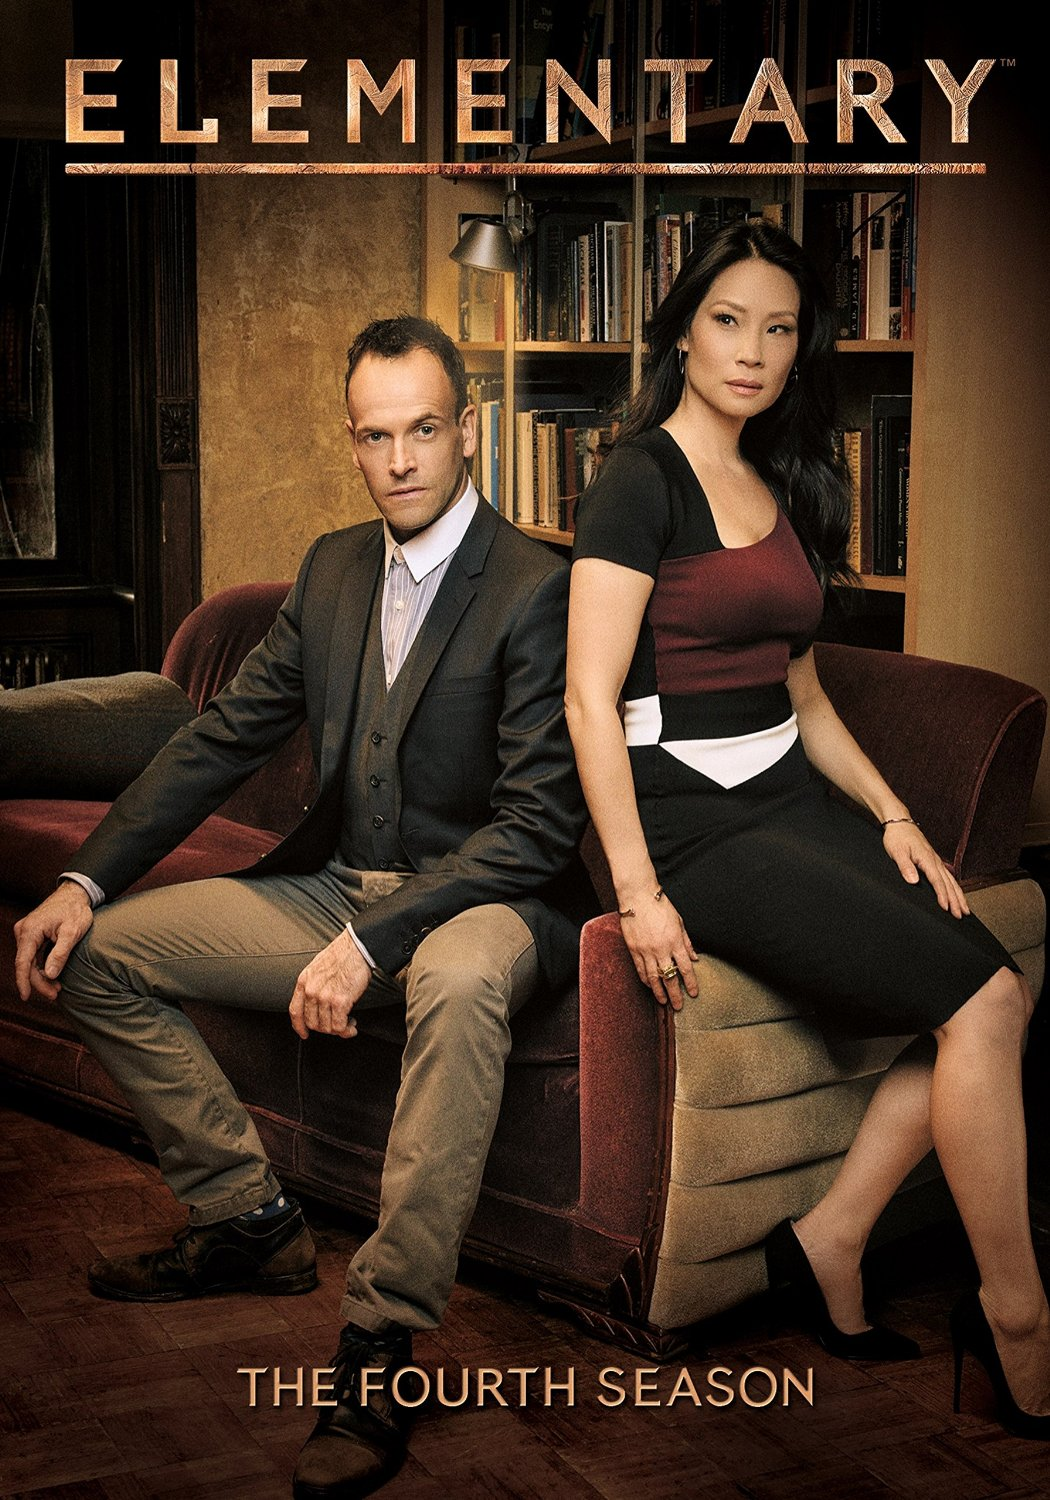 Elementary [TV Series] - Elementary: The Fourth Season